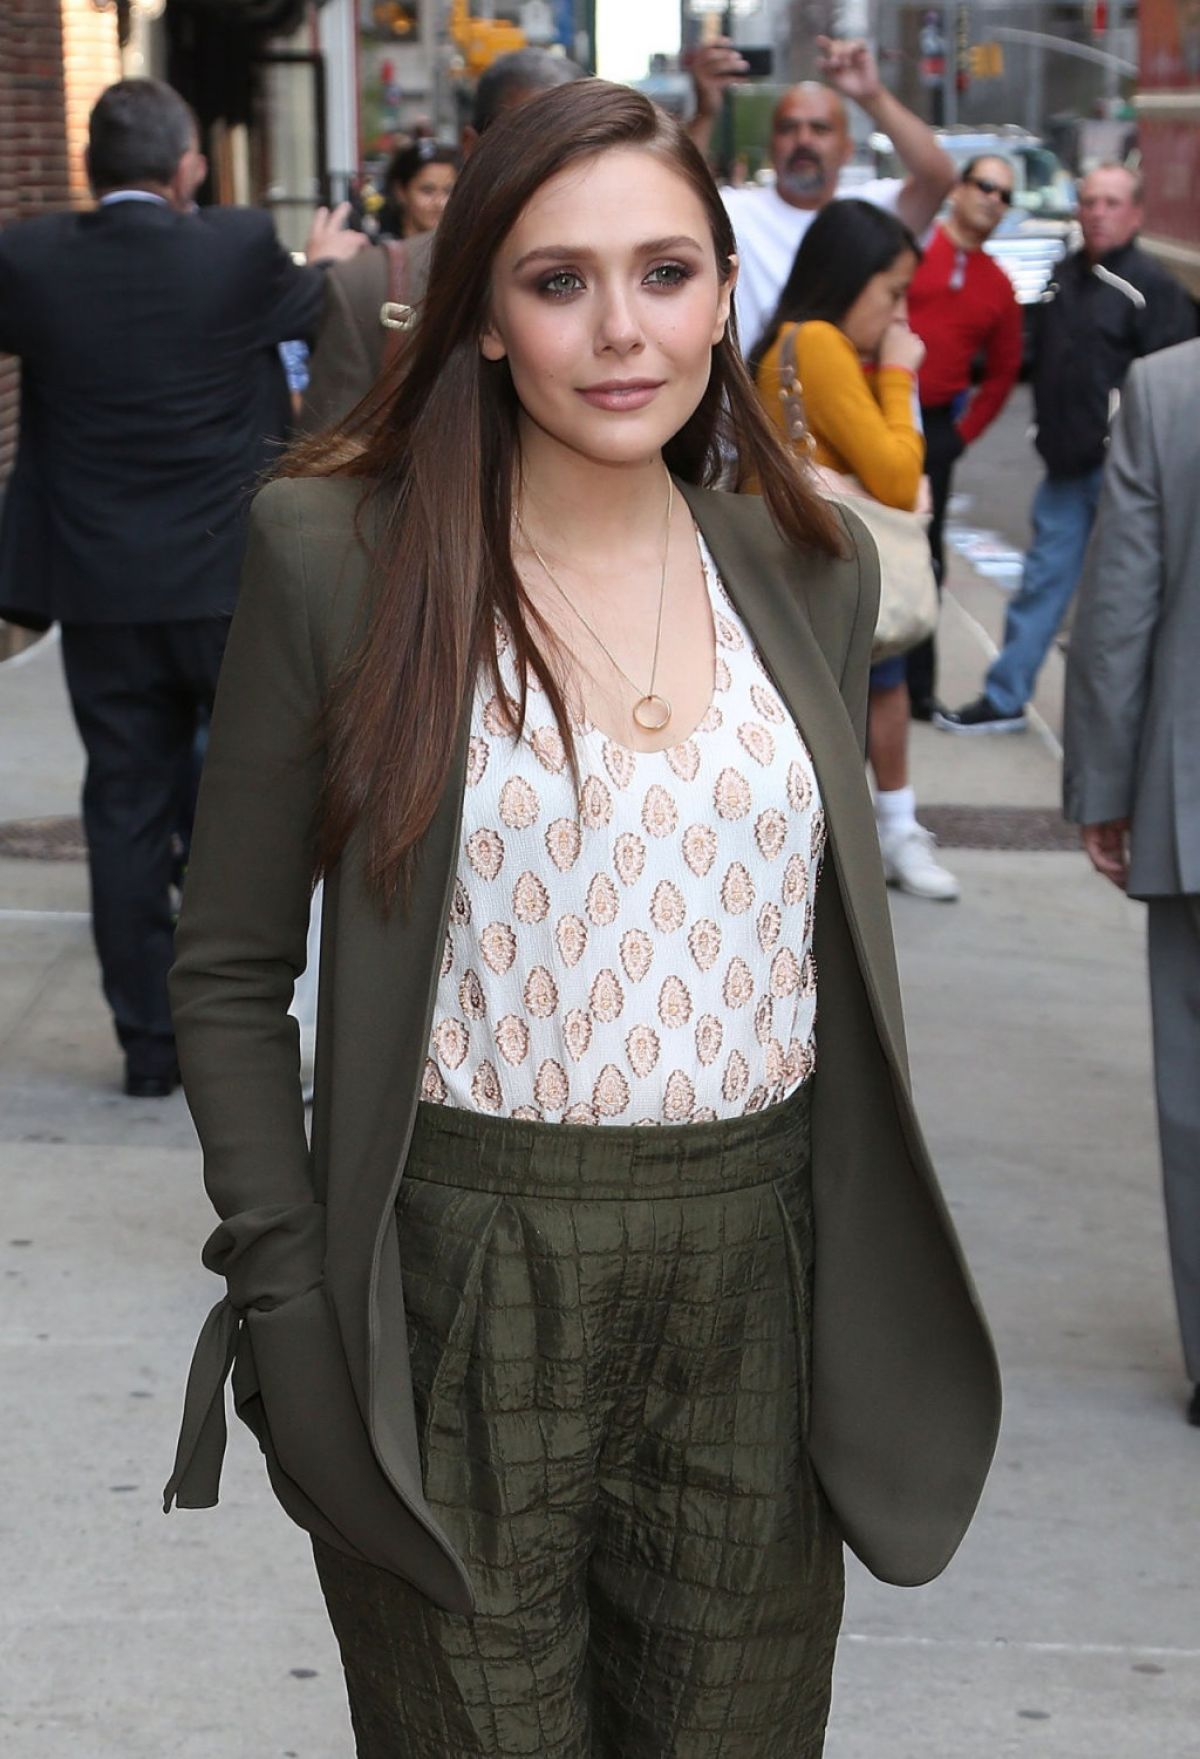 ELIZABETH OLSEN Arrives at The Late Show with David Letterman in New York